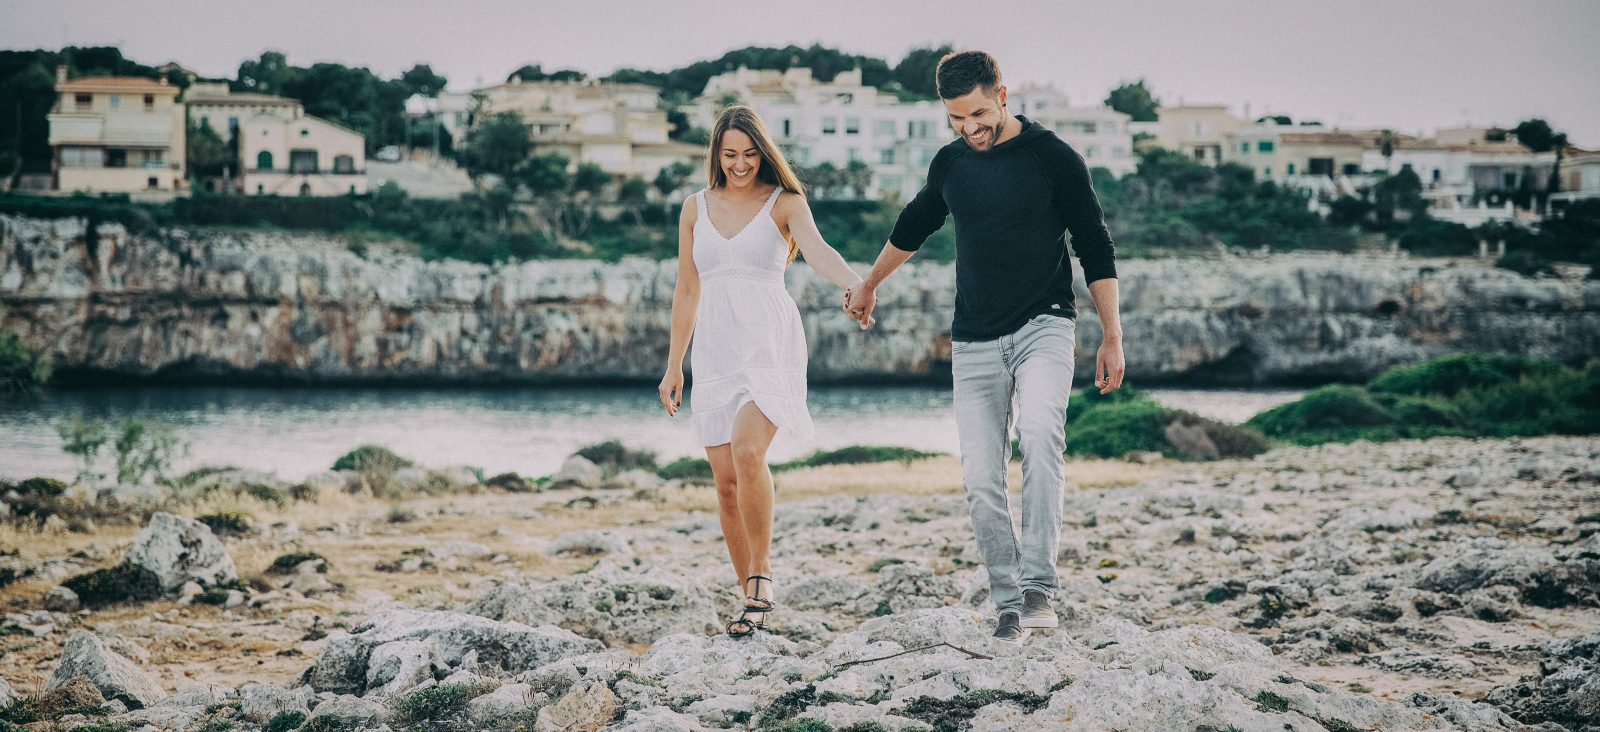 Fotoshooting_Mallorca_Lovestories_P3